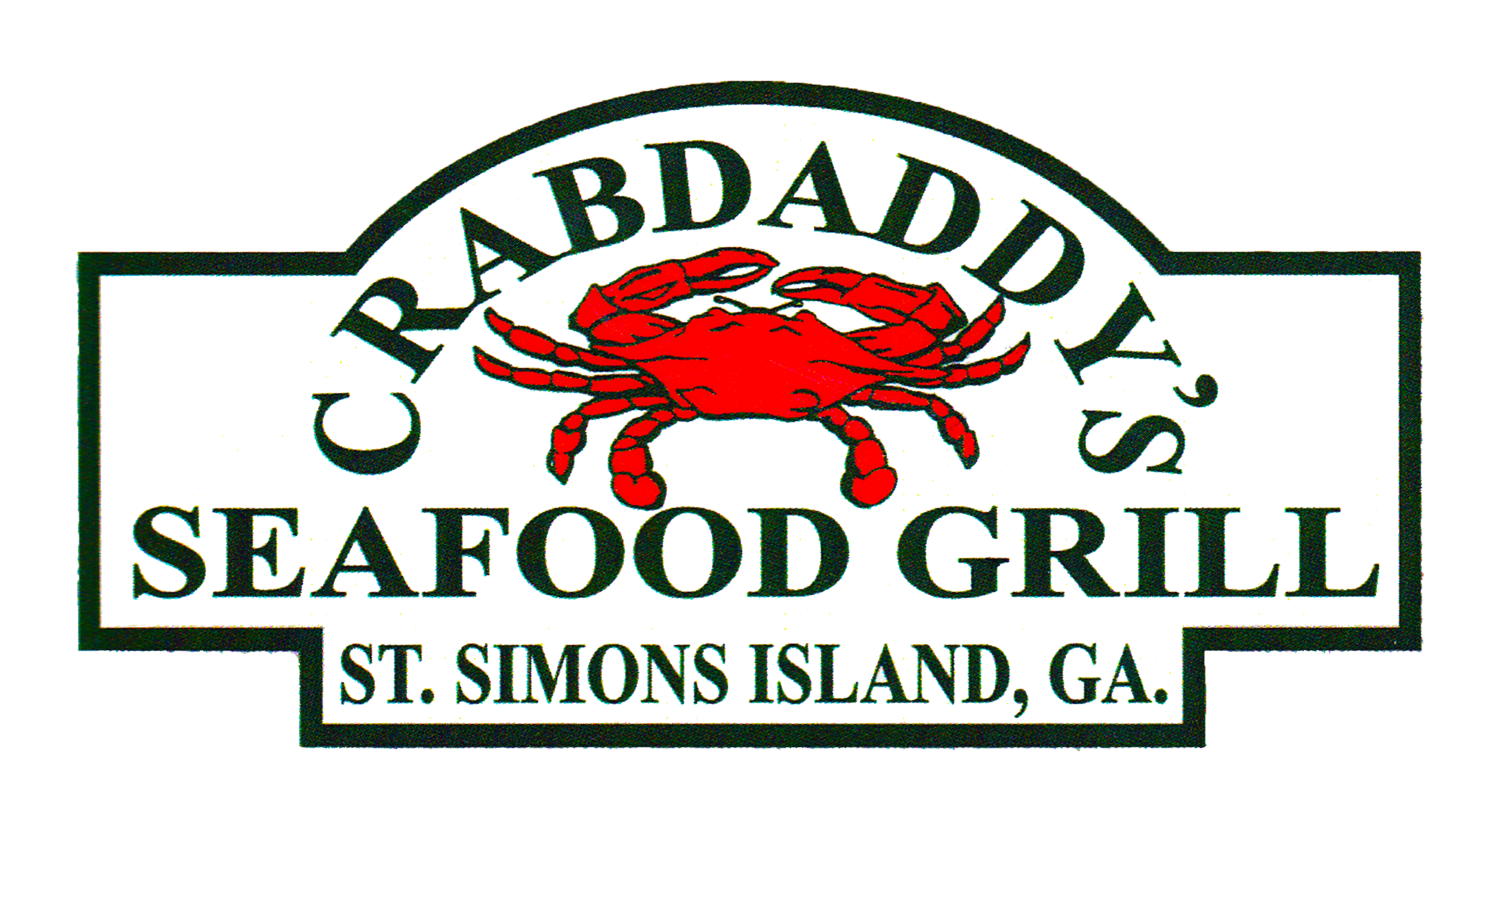 Gift Card Crabdaddy S Seafood Grill